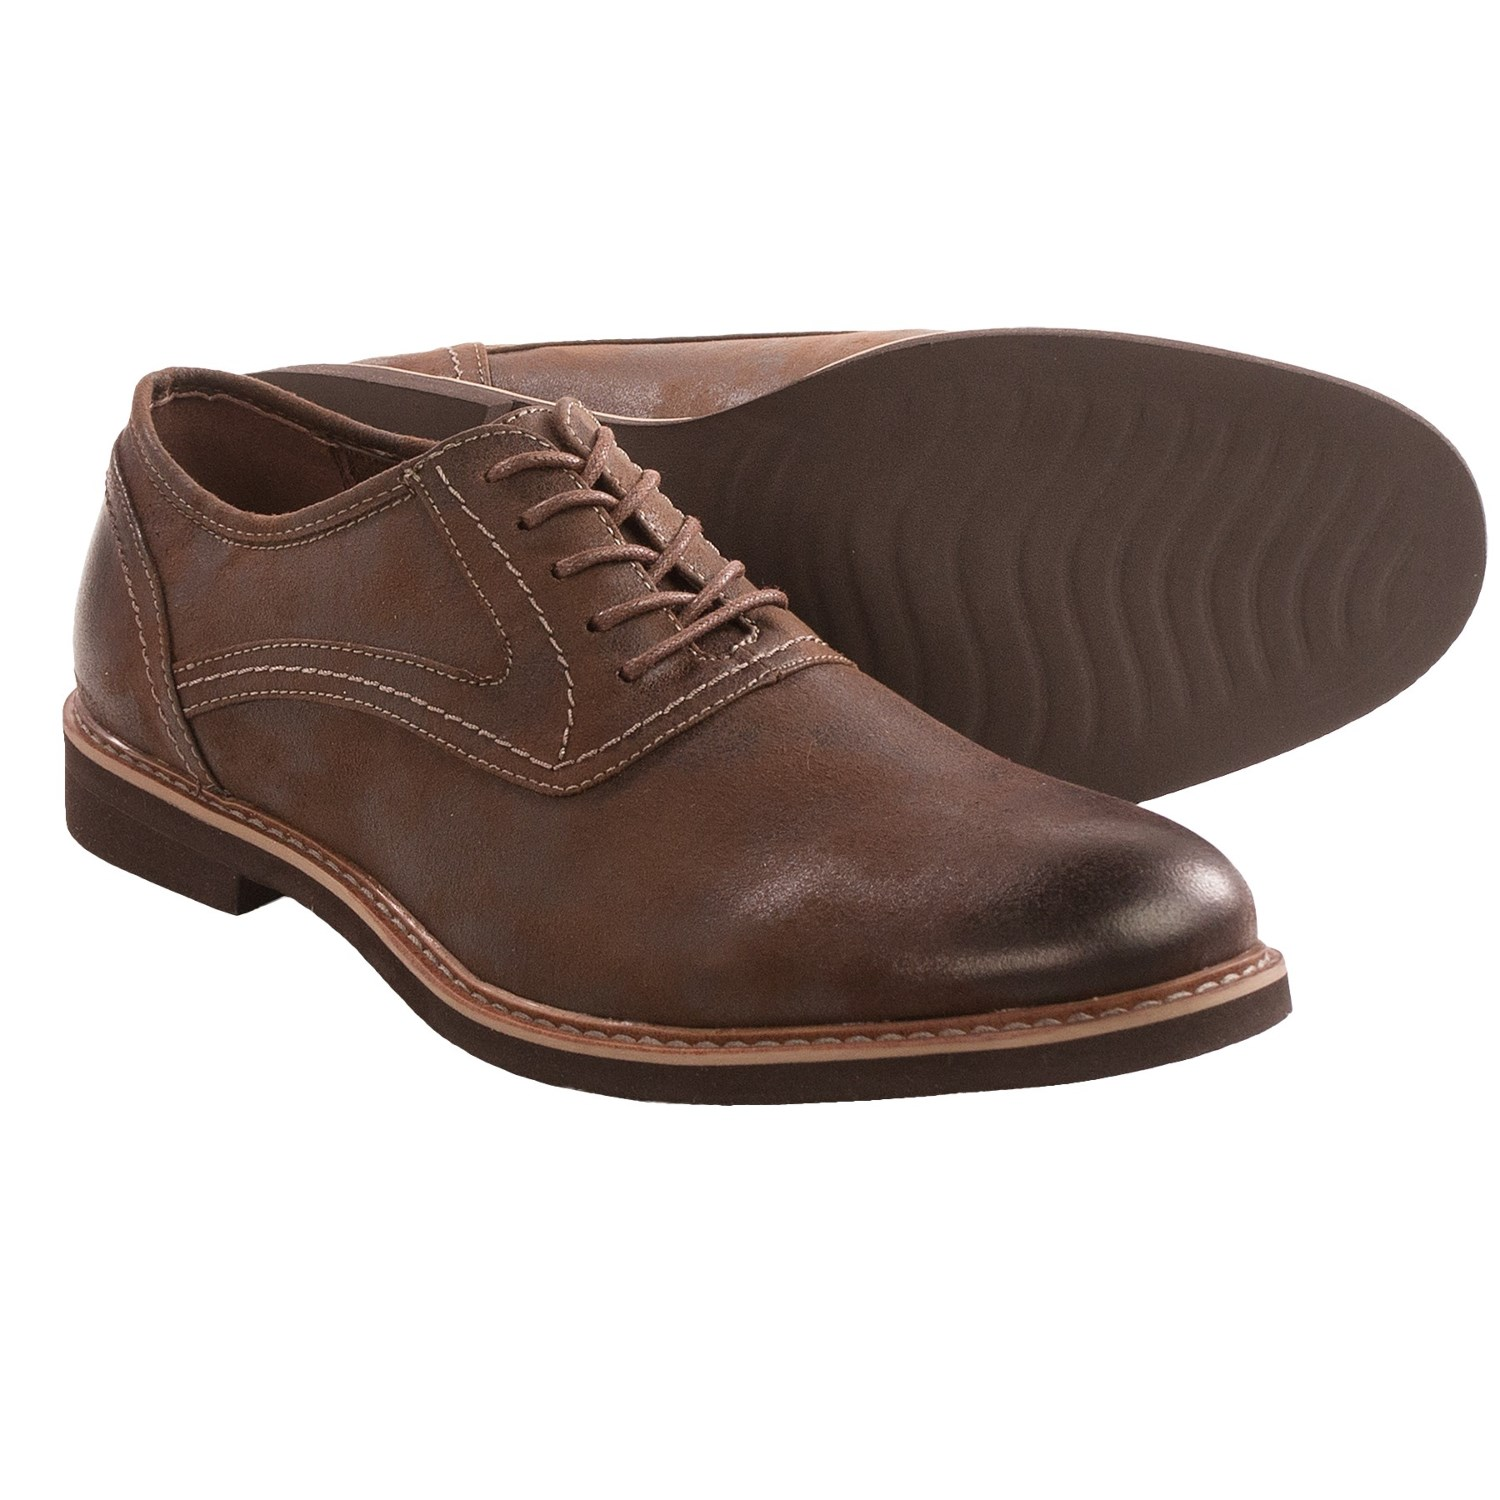 deer stags ardmore oxford shoes canvas plain toe for